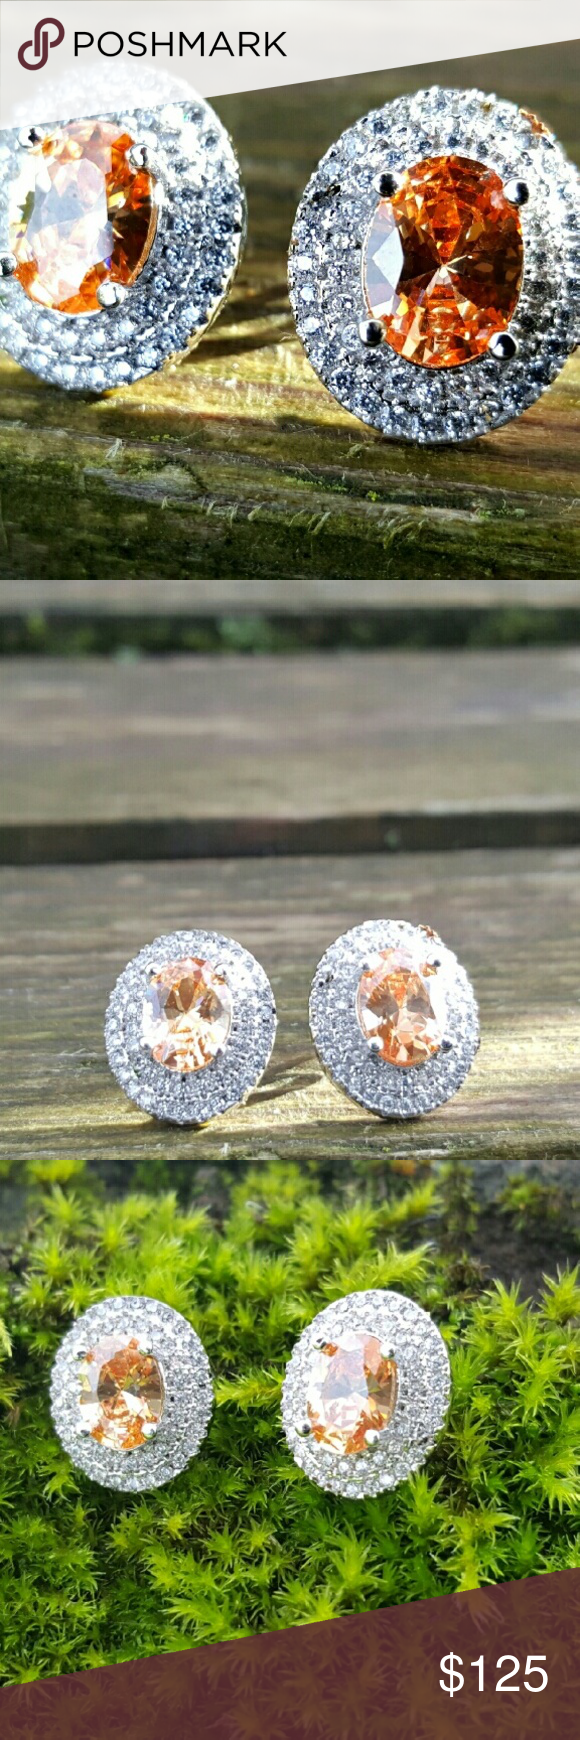 prouctdetail round carat approximately padparadscha sapphire earrings rare